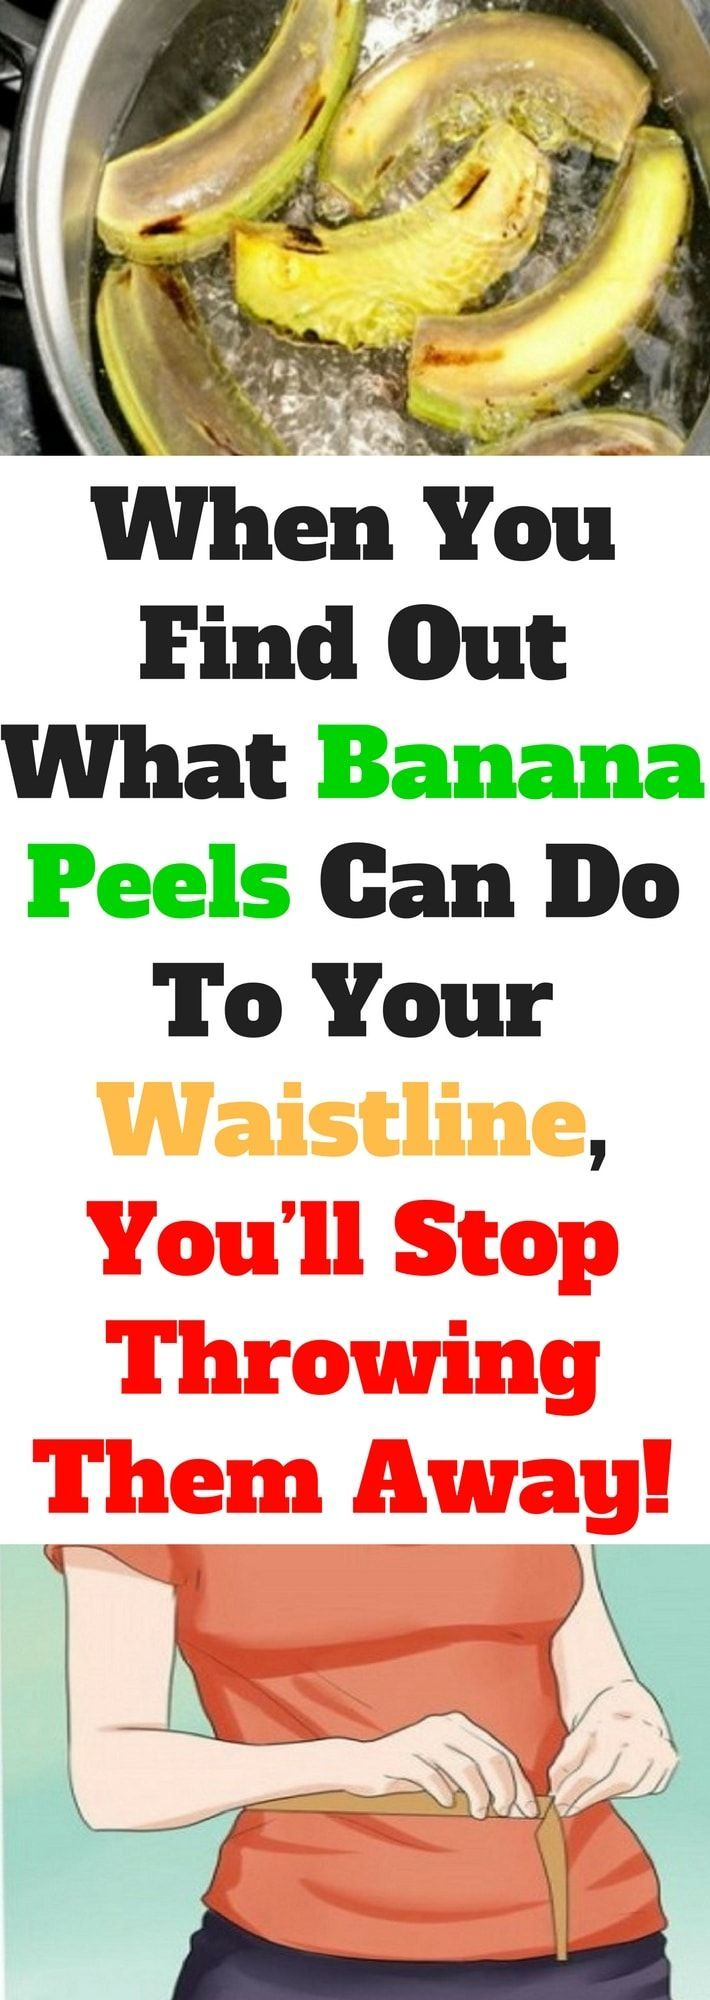 When You Find Out What Banana Peels Can Do To Your Waistline, You'll Stop Throwing Them Away!!!